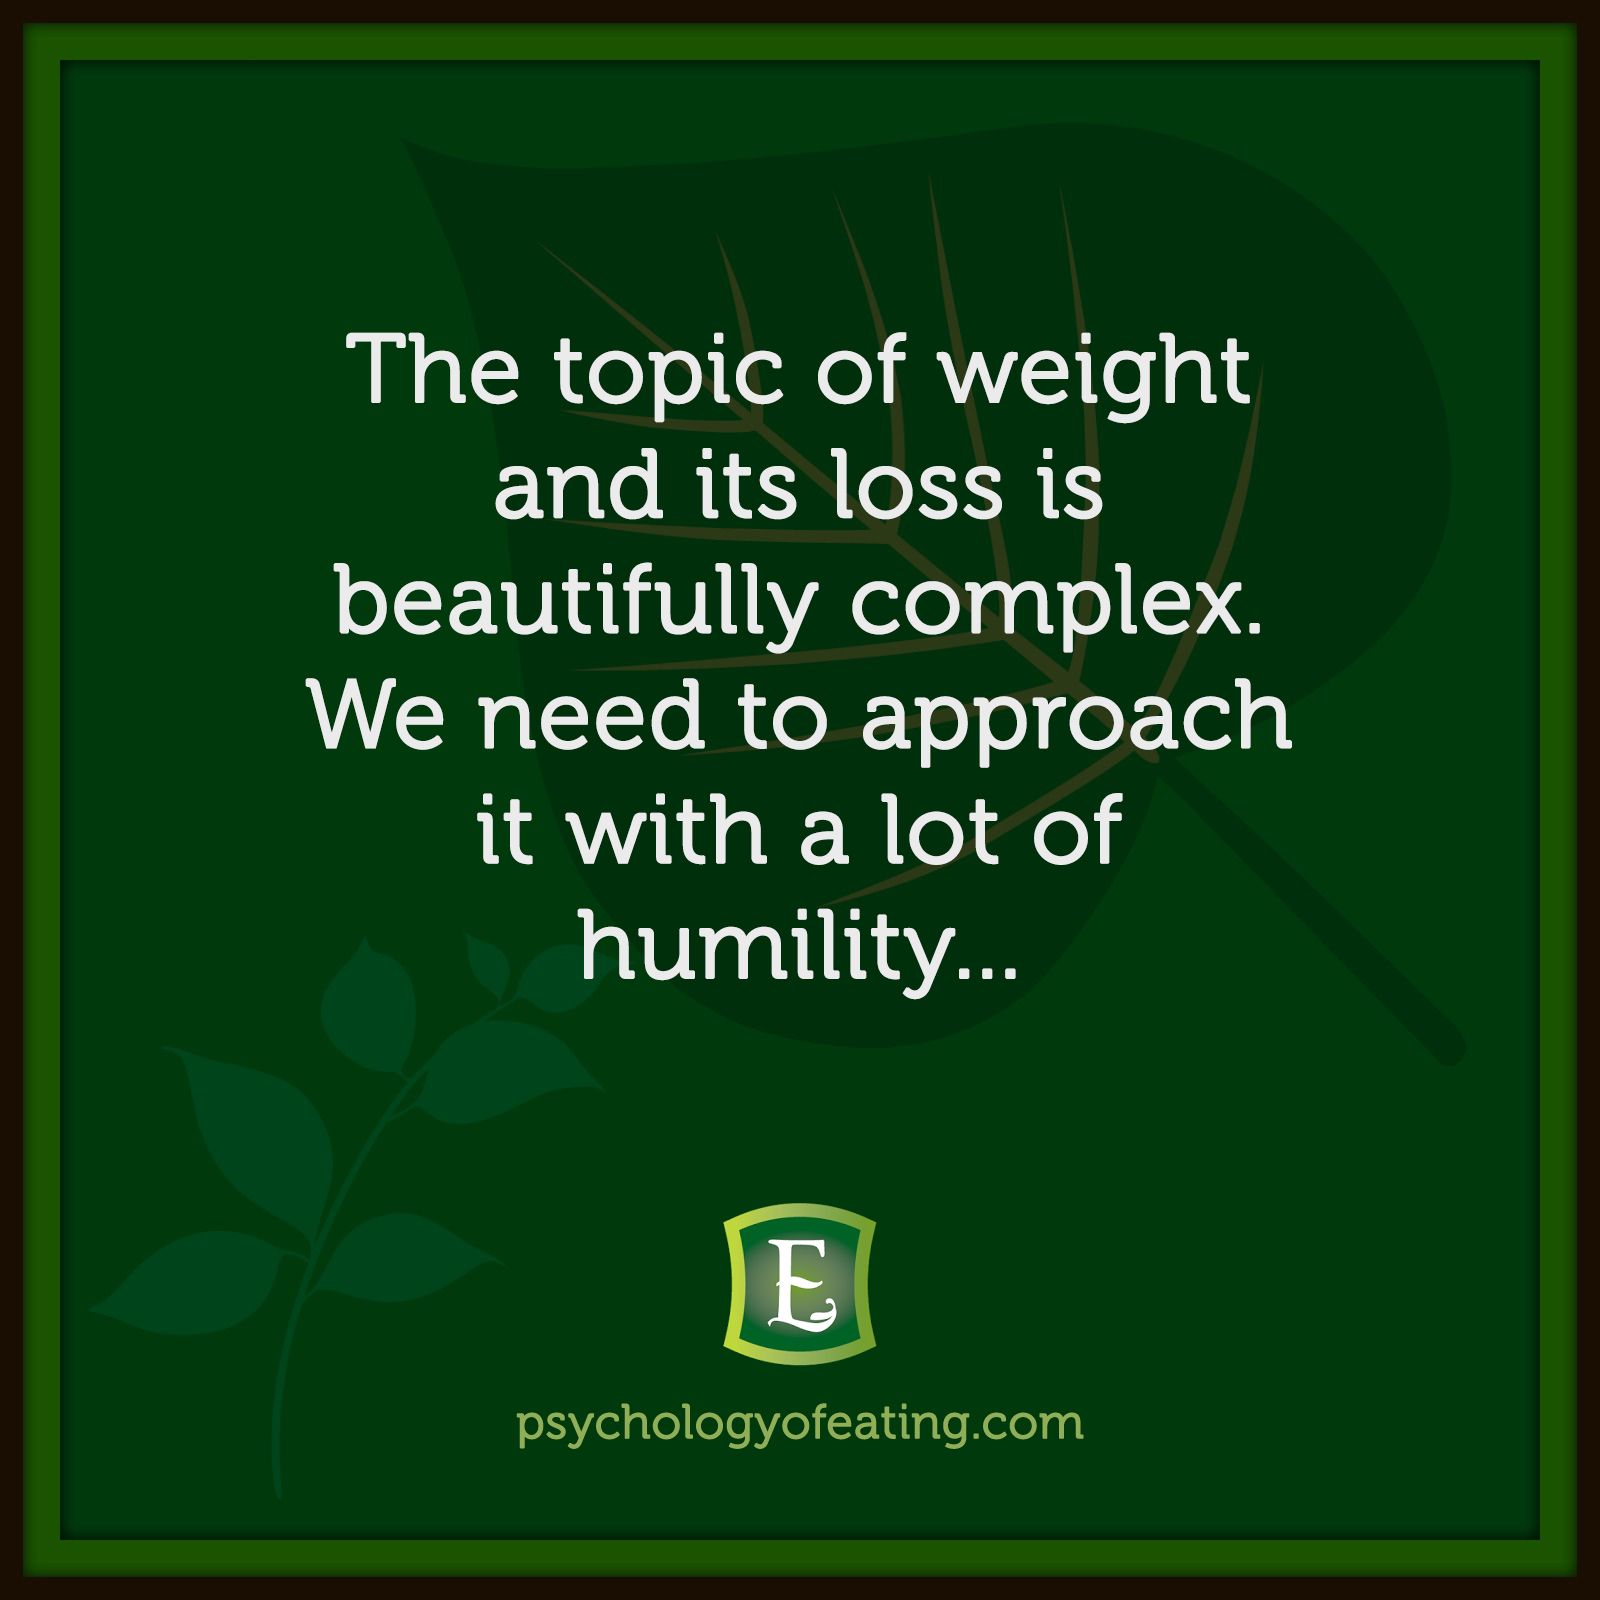 The topic of weight and its loss is beautifully complex. We need to approach it with a lot of humility… #health #nutrition #eatingpsychology #IPE